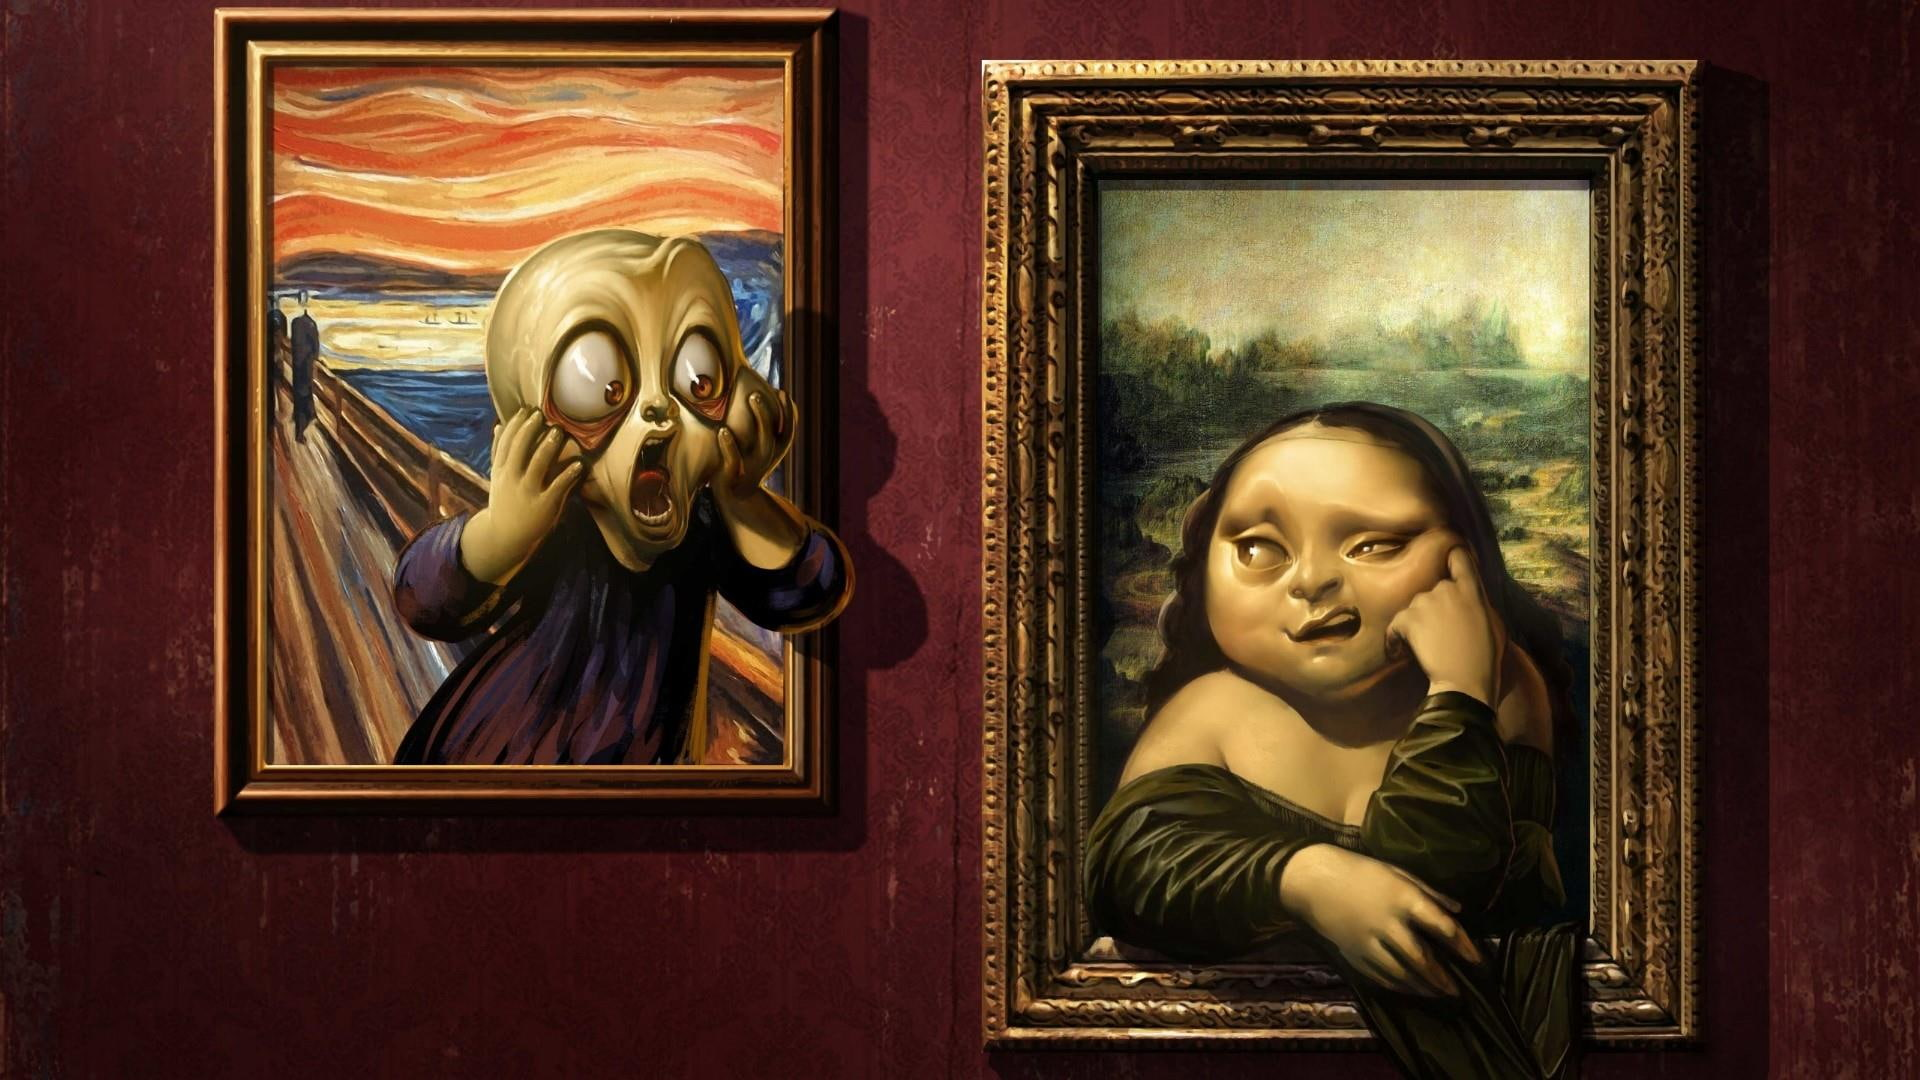 Cuadro La Mona Lisa Hd Wallpaper Mona Lisa Painting Edvard Munch Scream Leonardo